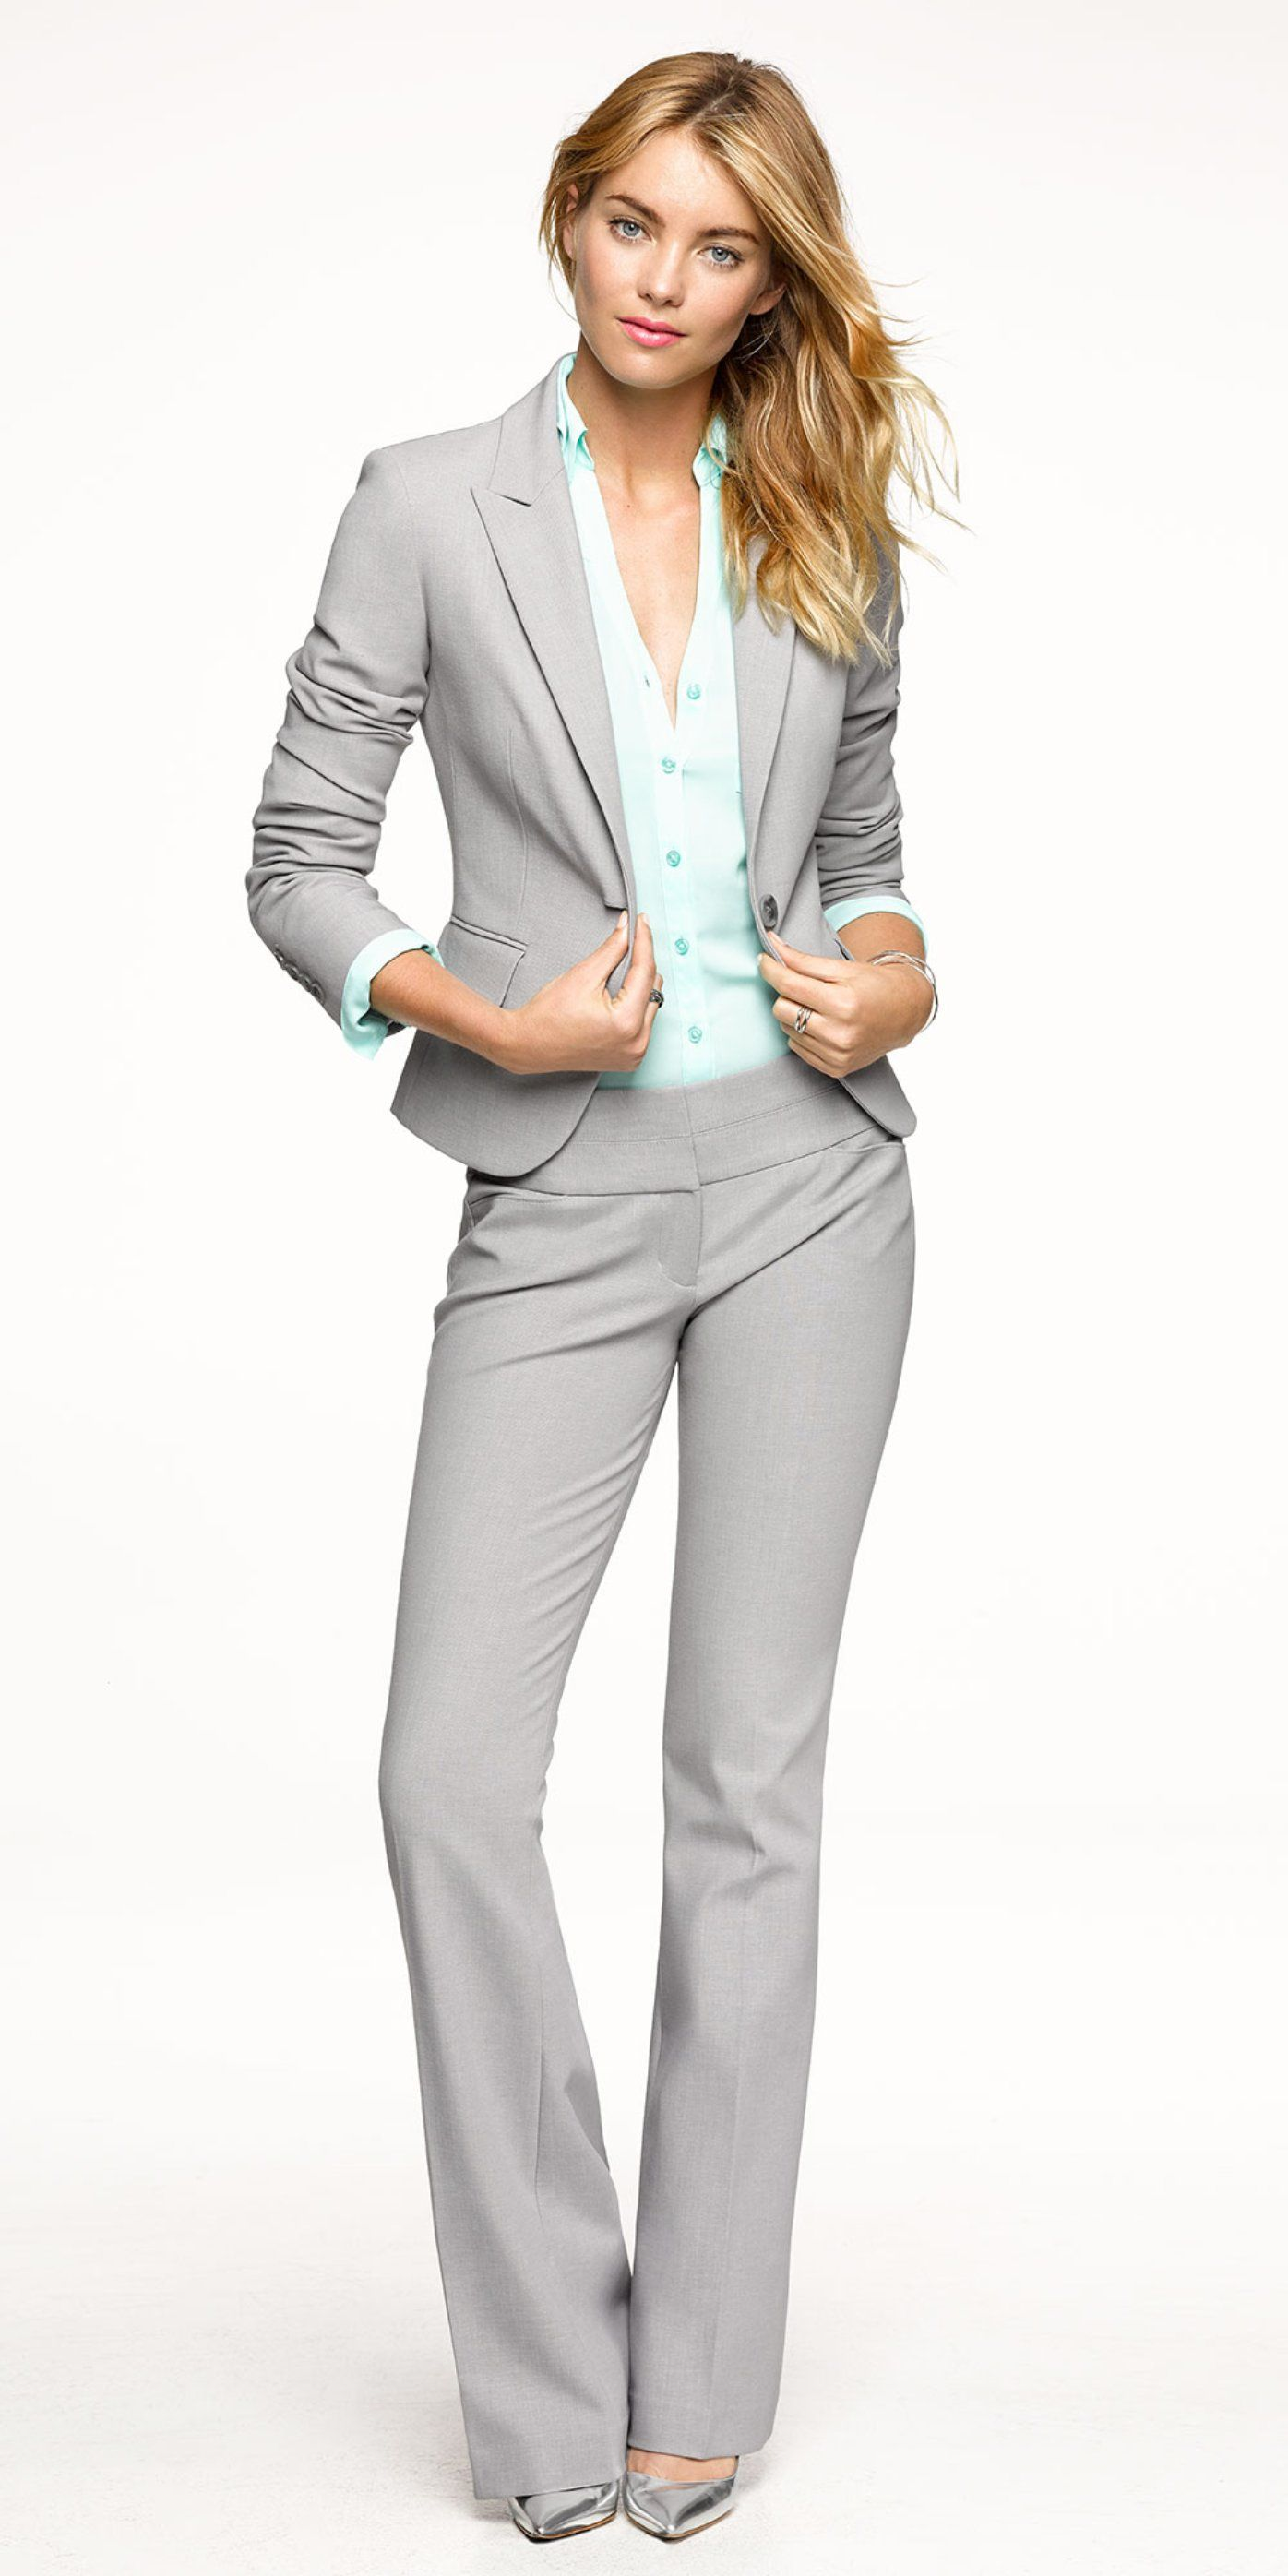 Coral Suit - Cute Business suit! | My Style | Pinterest | A ...